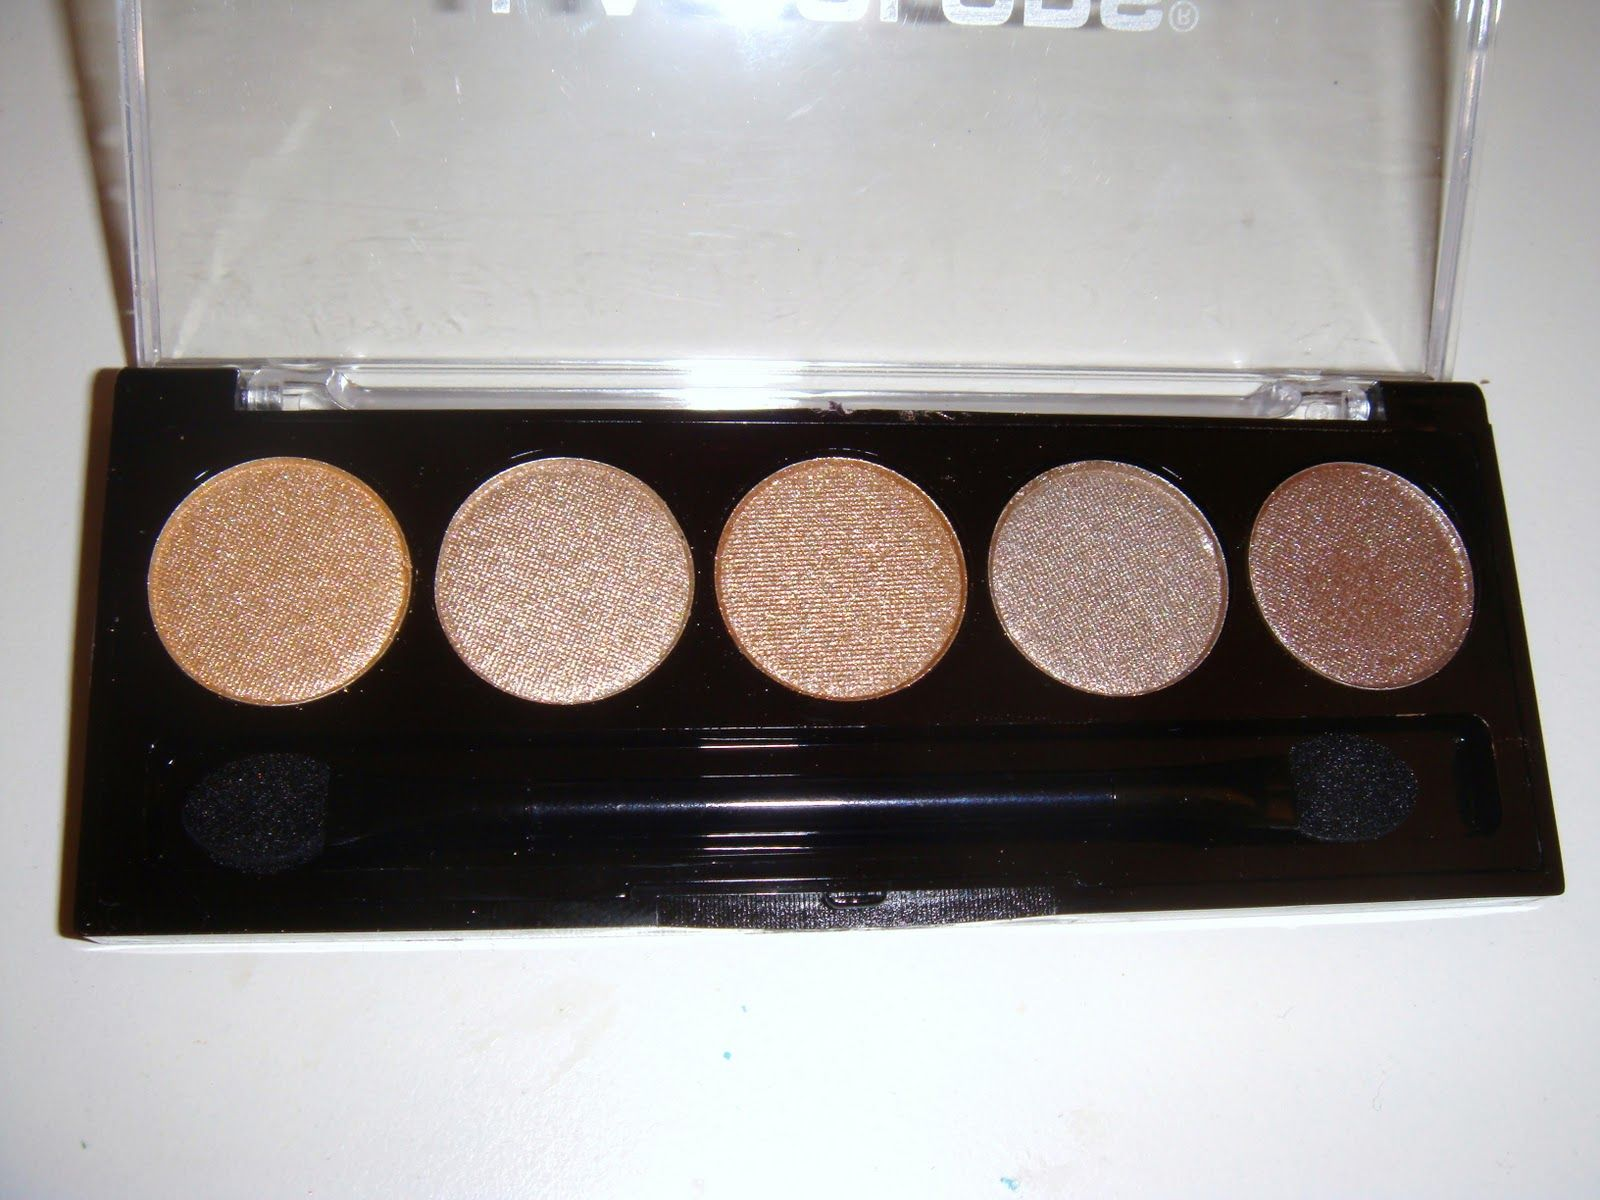 L.A. Colors 5 Color Metallic Eyeshadow in Tea Time | My Makeup ...